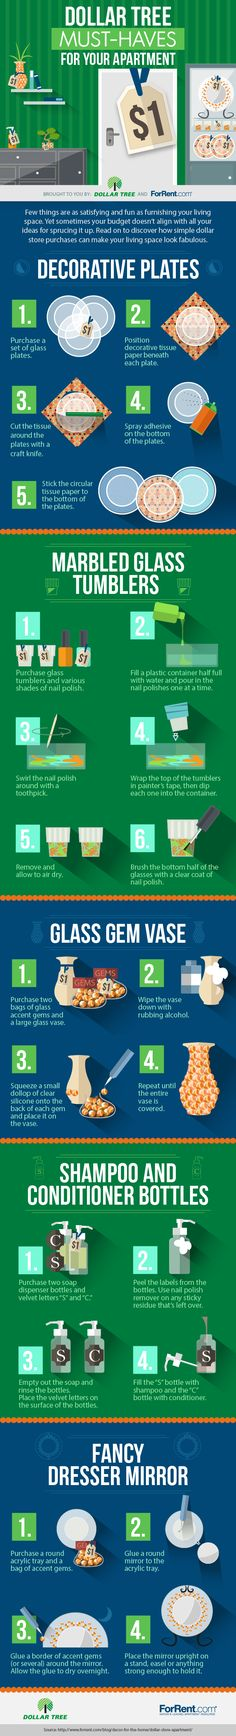 Dollar Tree Must-Haves for Your Apartment #Infographic #HomeImprovement